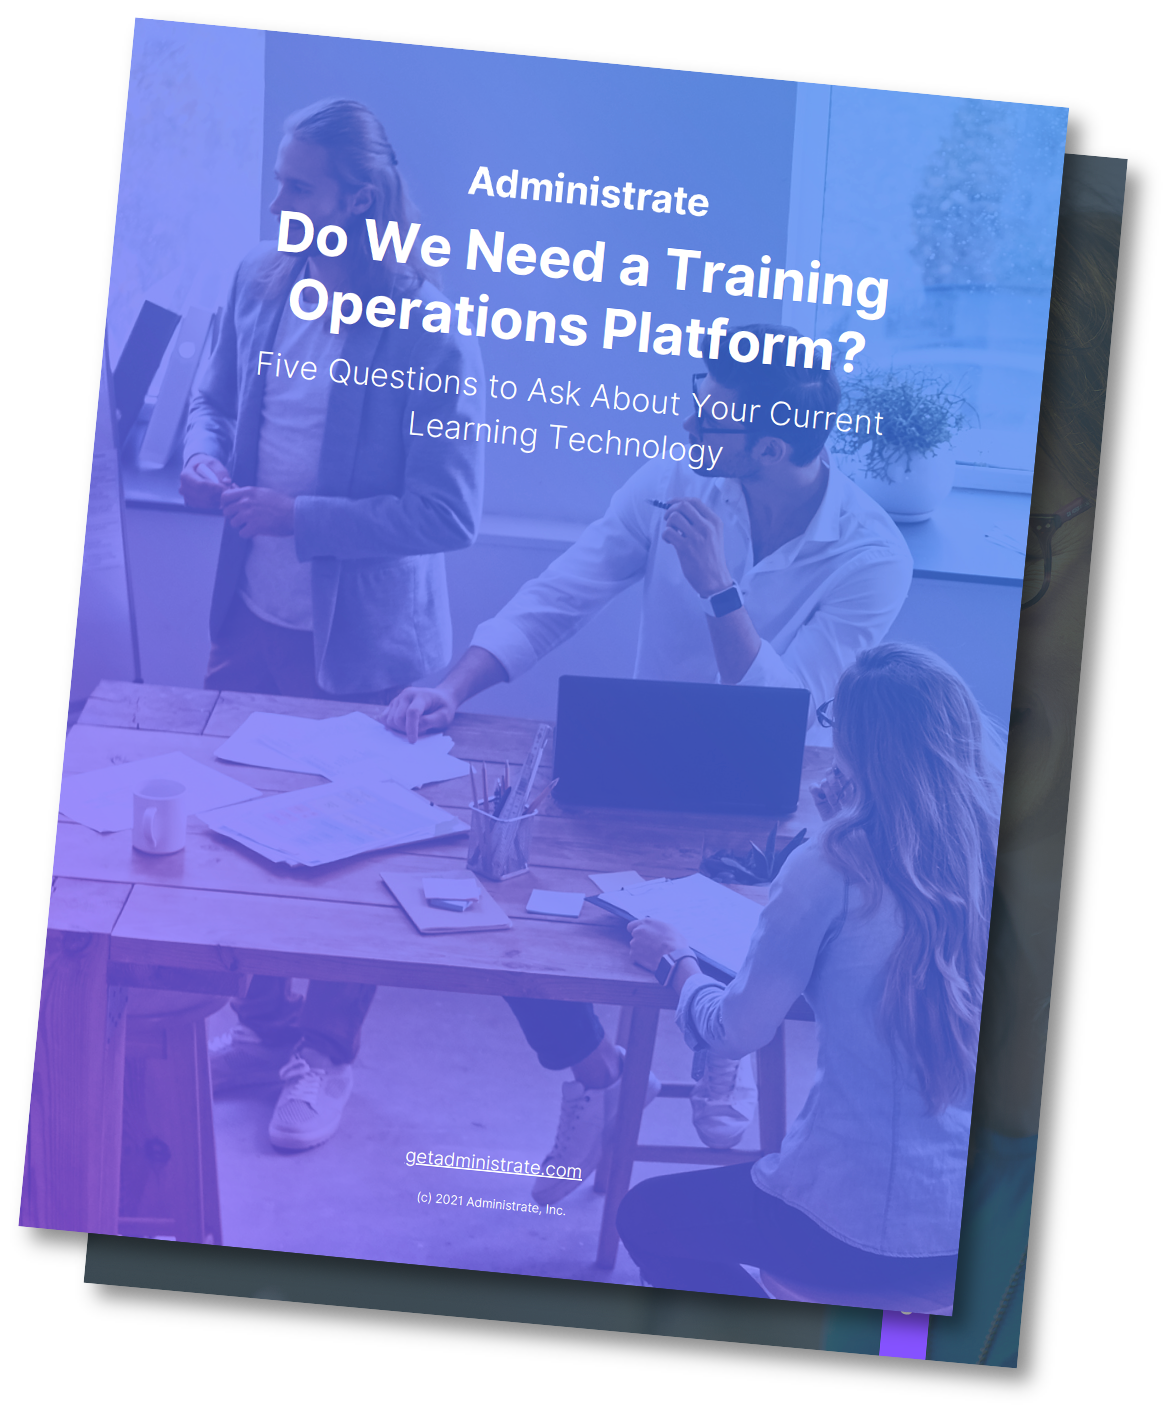 Ask the Five Questions in this Guide to Determine Your Need for a Training Management Platform!